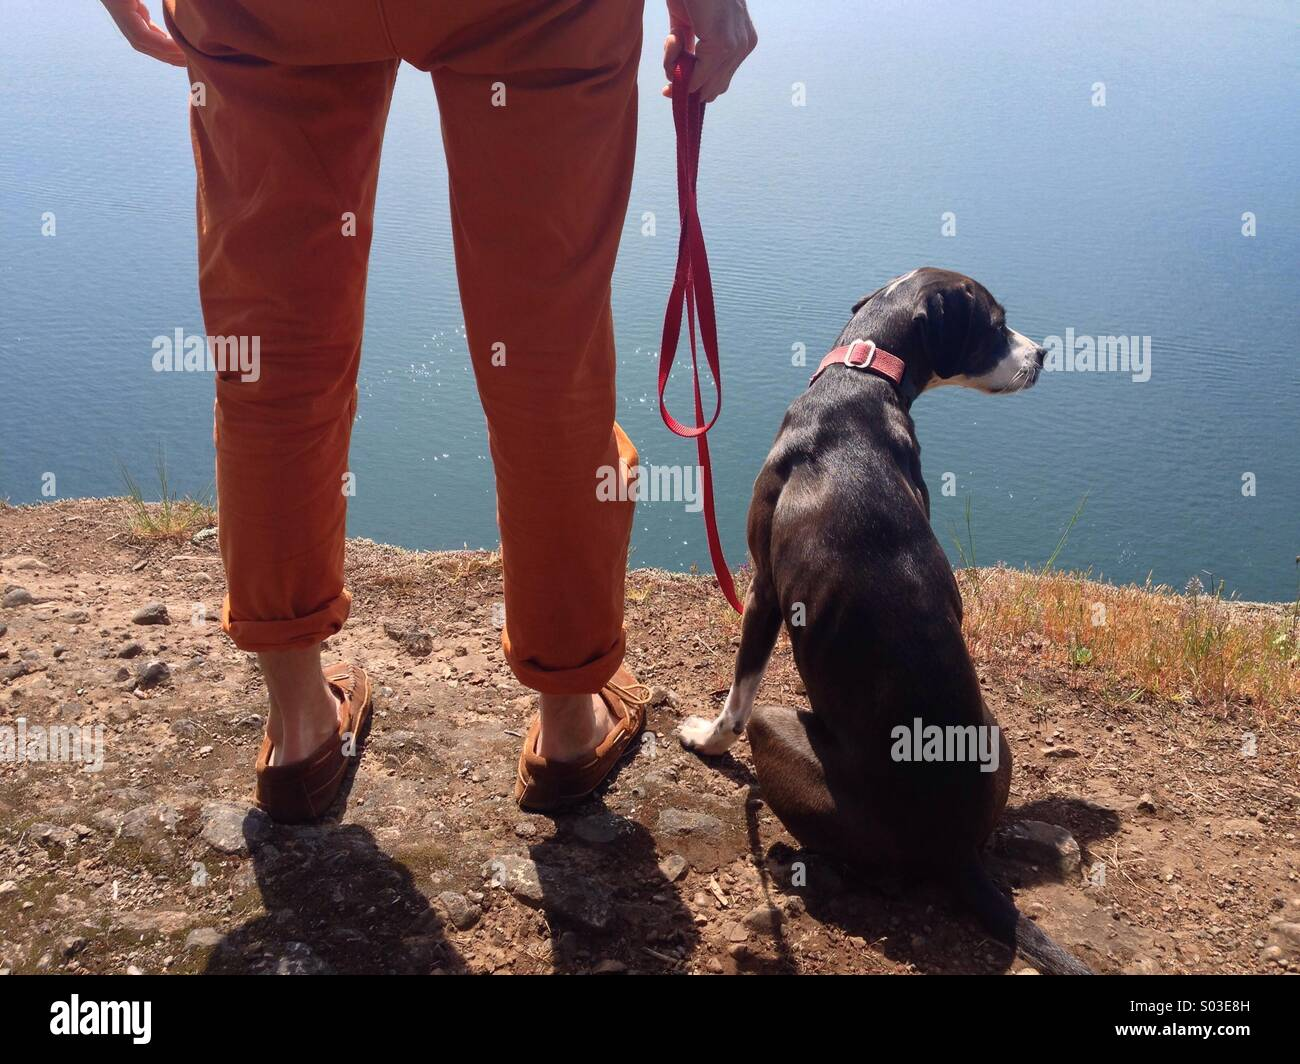 Man's legs and hand with dog high on cliff overlooking ocean in the sun. - Stock Image